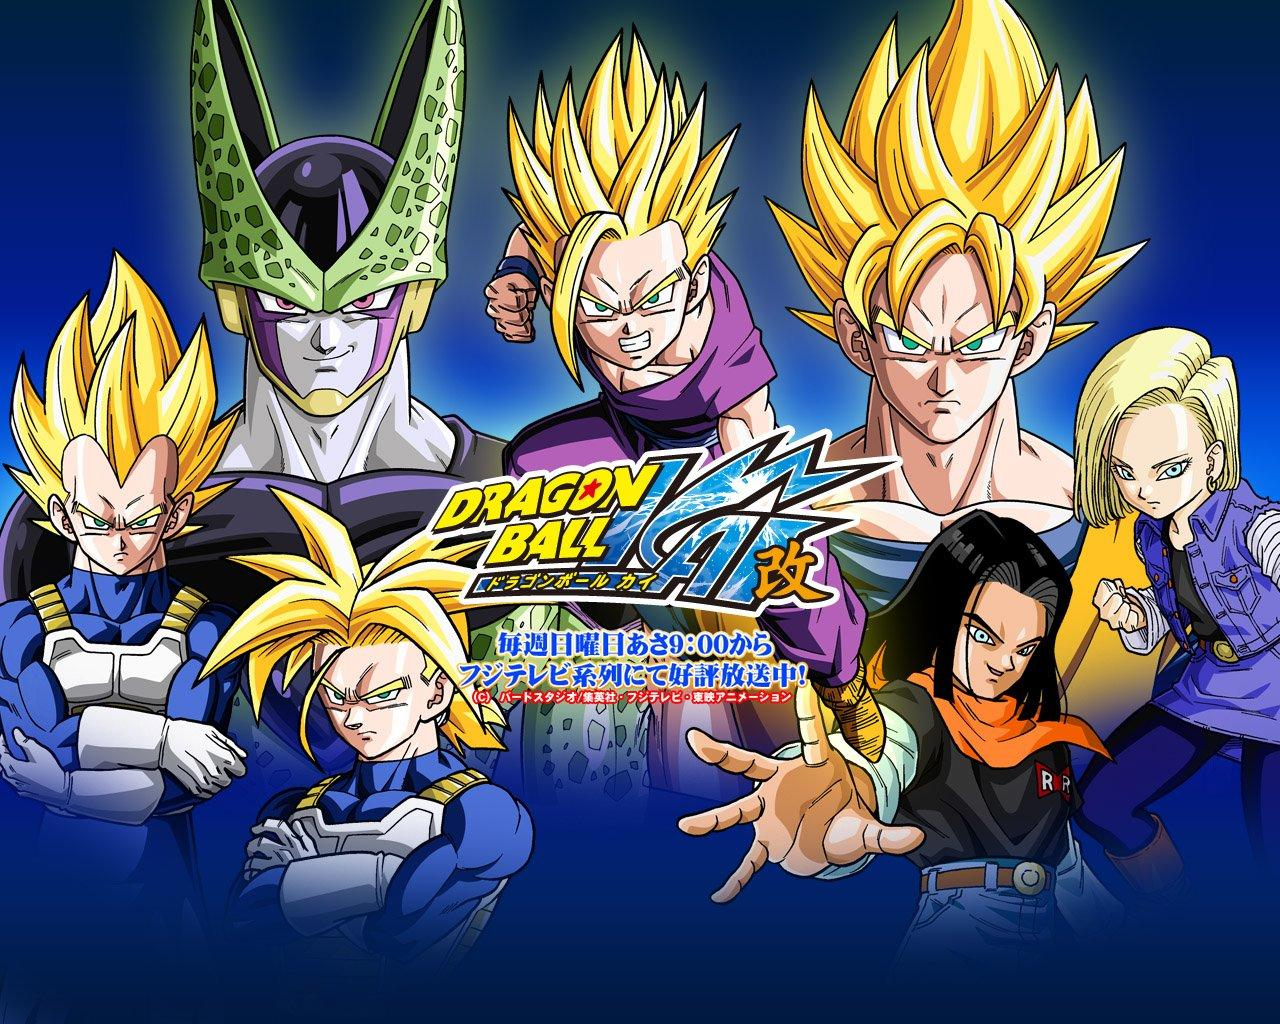 Dragon Ball Z Hd Wallpaper For Android: Wallpapers HD Dragon Ball Z